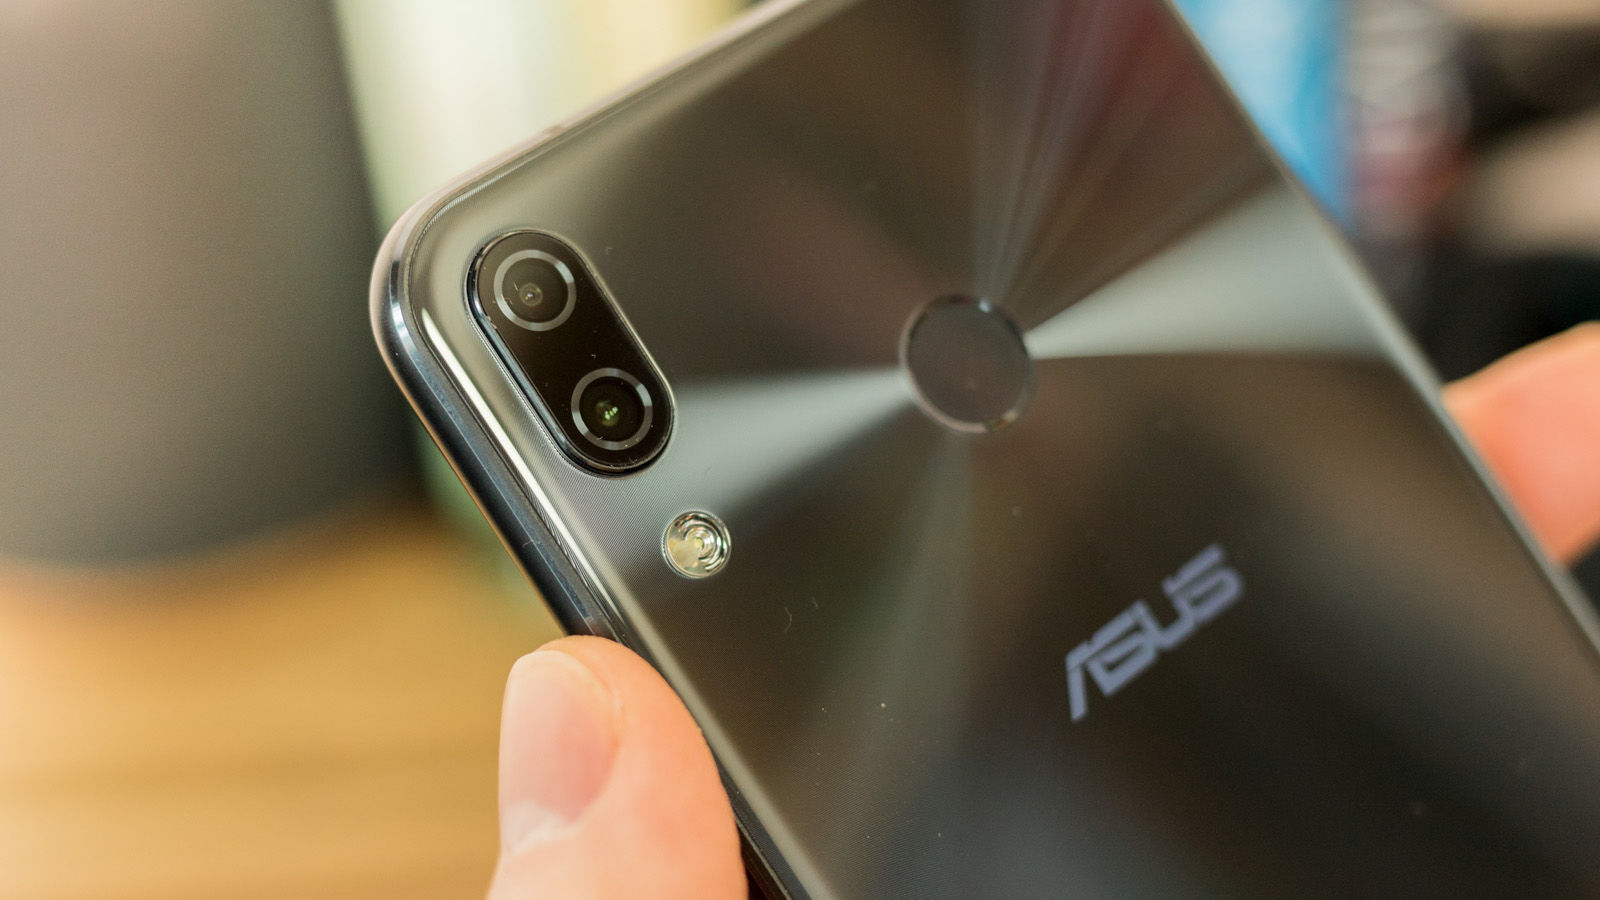 asus zenfone 5 review0222 4